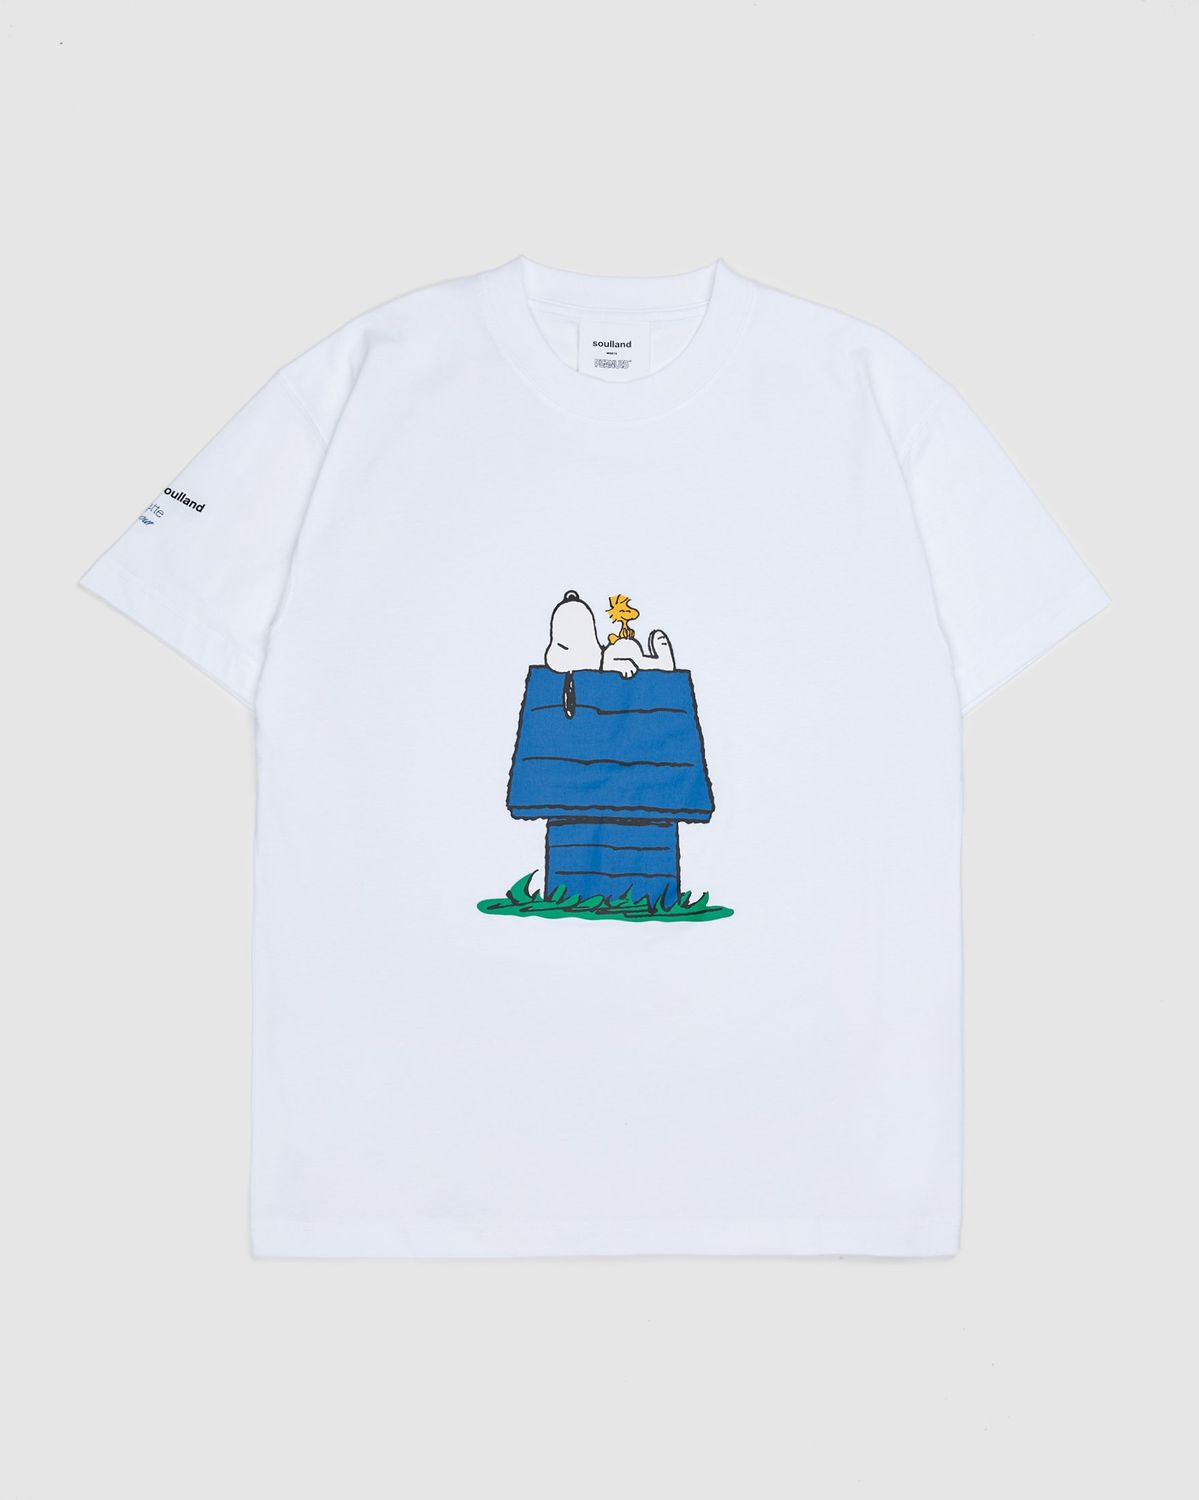 Colette Mon Amour x Soulland -  Snoopy Bed White T-Shirt - Image 1